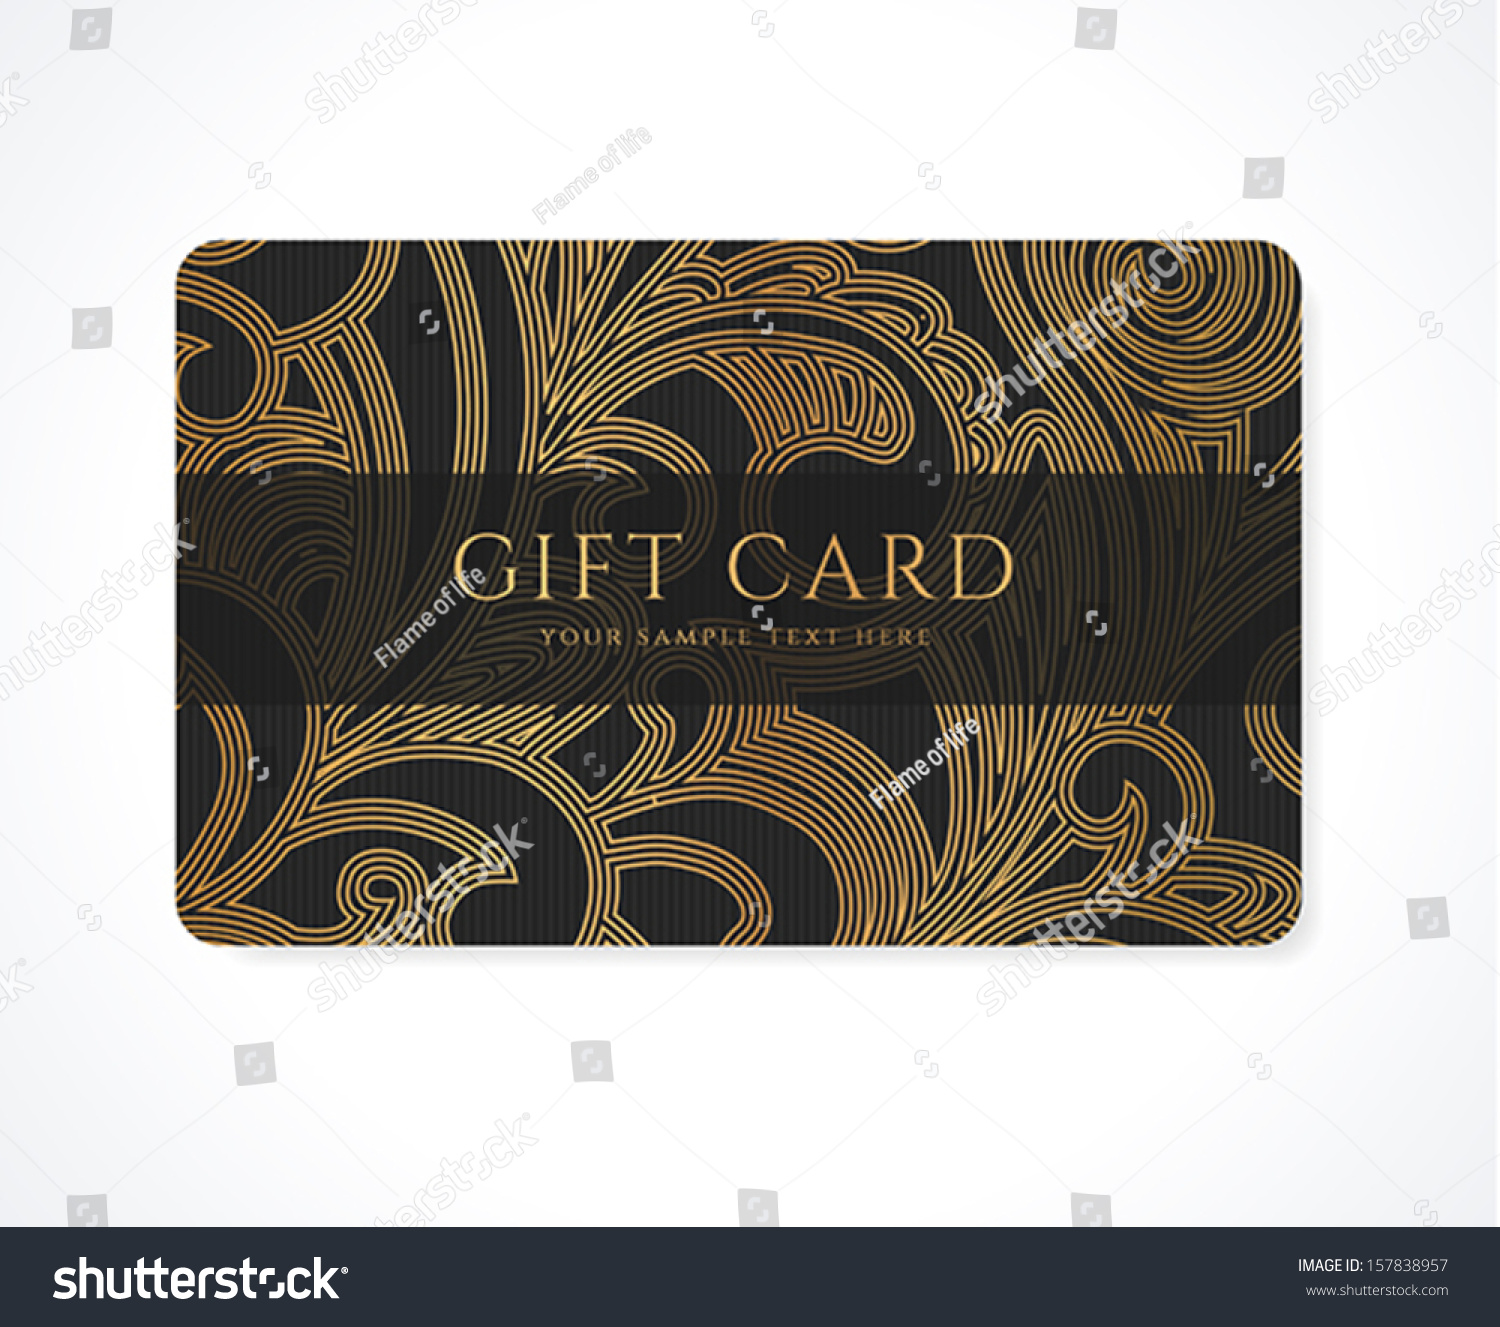 Gift Card Discount Card Business Card Stock Vector